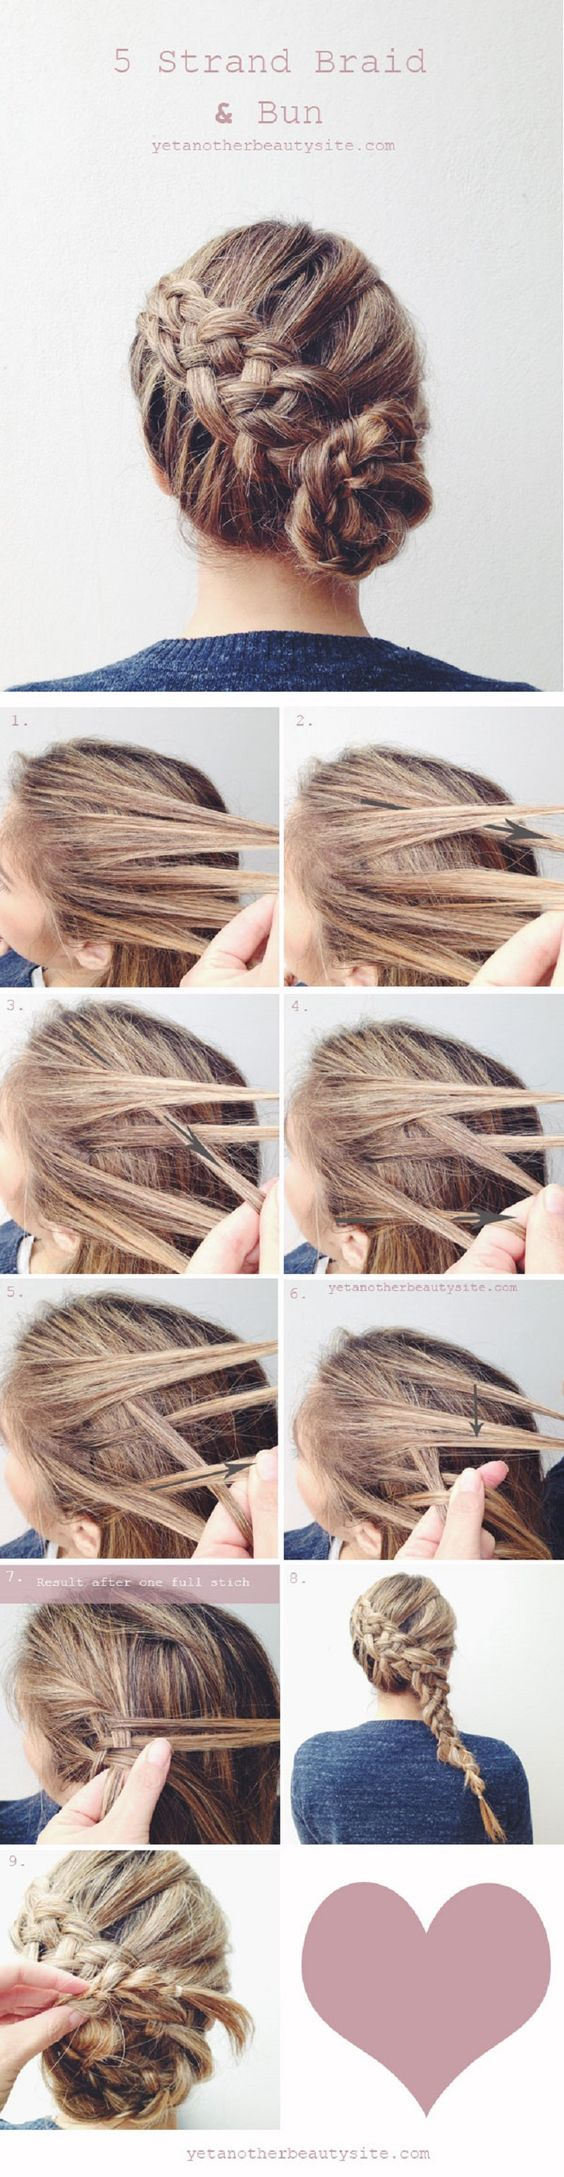 5 strand of braided hair over